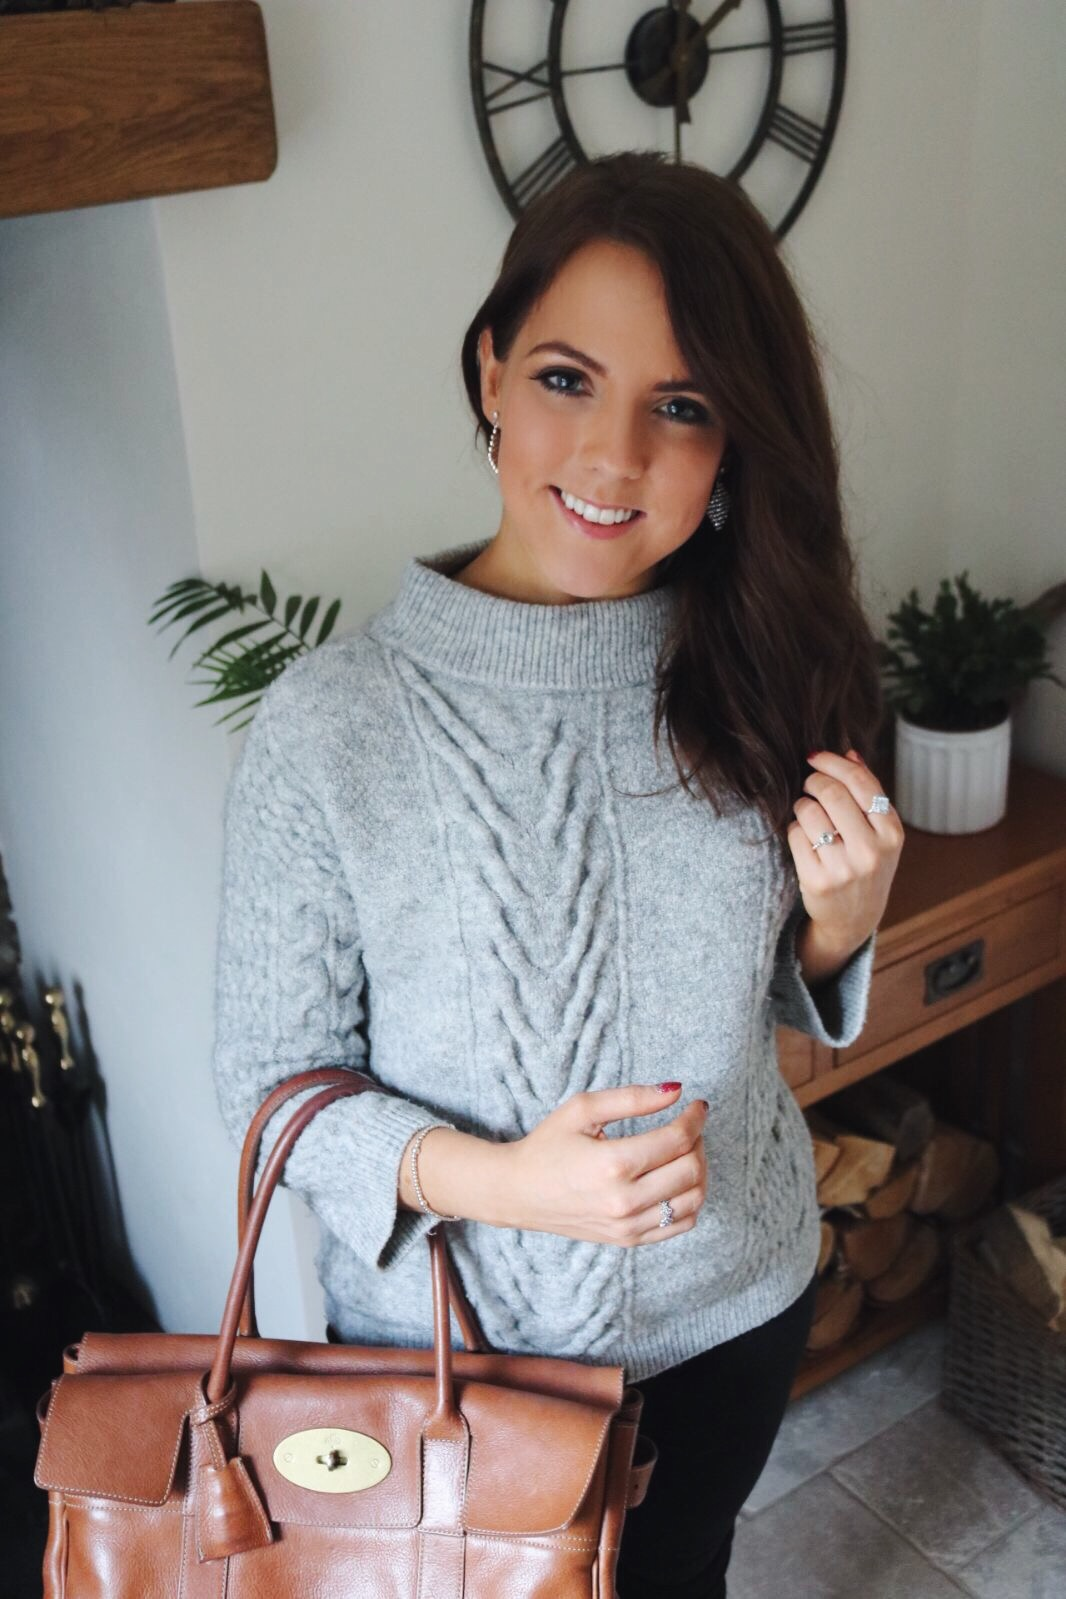 Black jeans, grey jumper and Mulberry bag